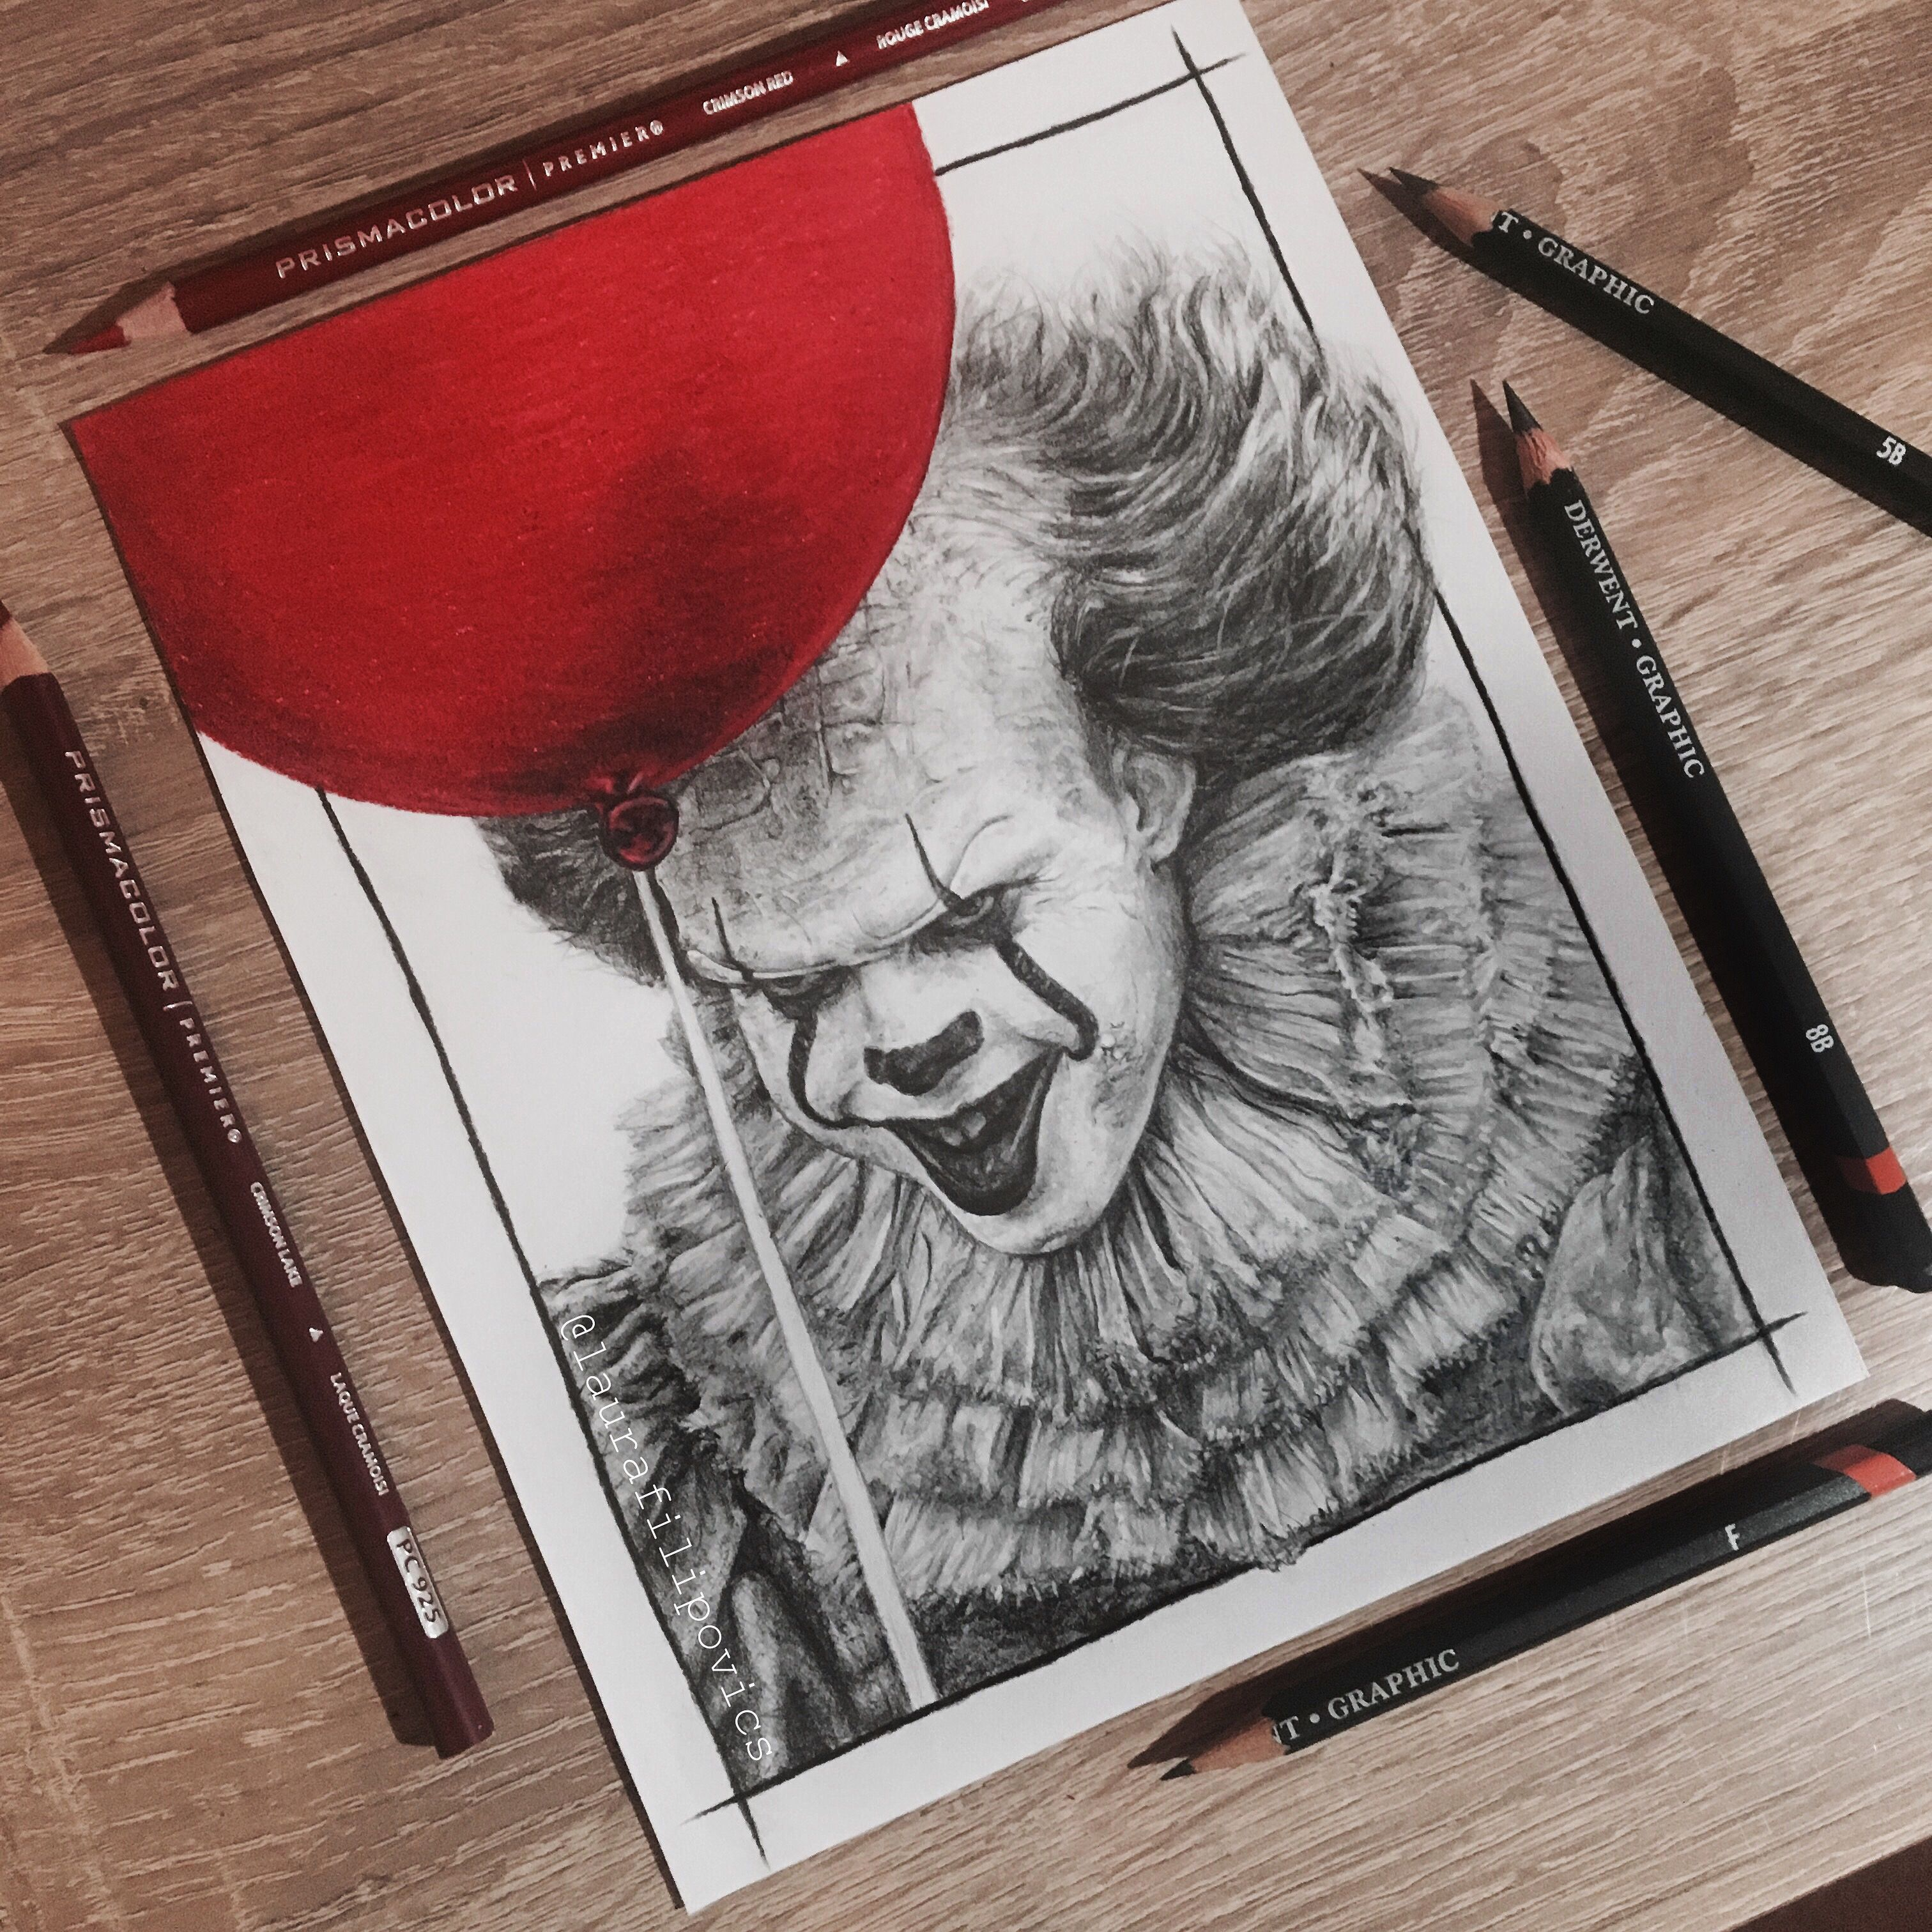 Graphite Colored Pencil Drawing Of Pennywise The Dancing Clown Bill Skarsgard From It Scary Drawings Pencil Drawings Pennywise The Dancing Clown